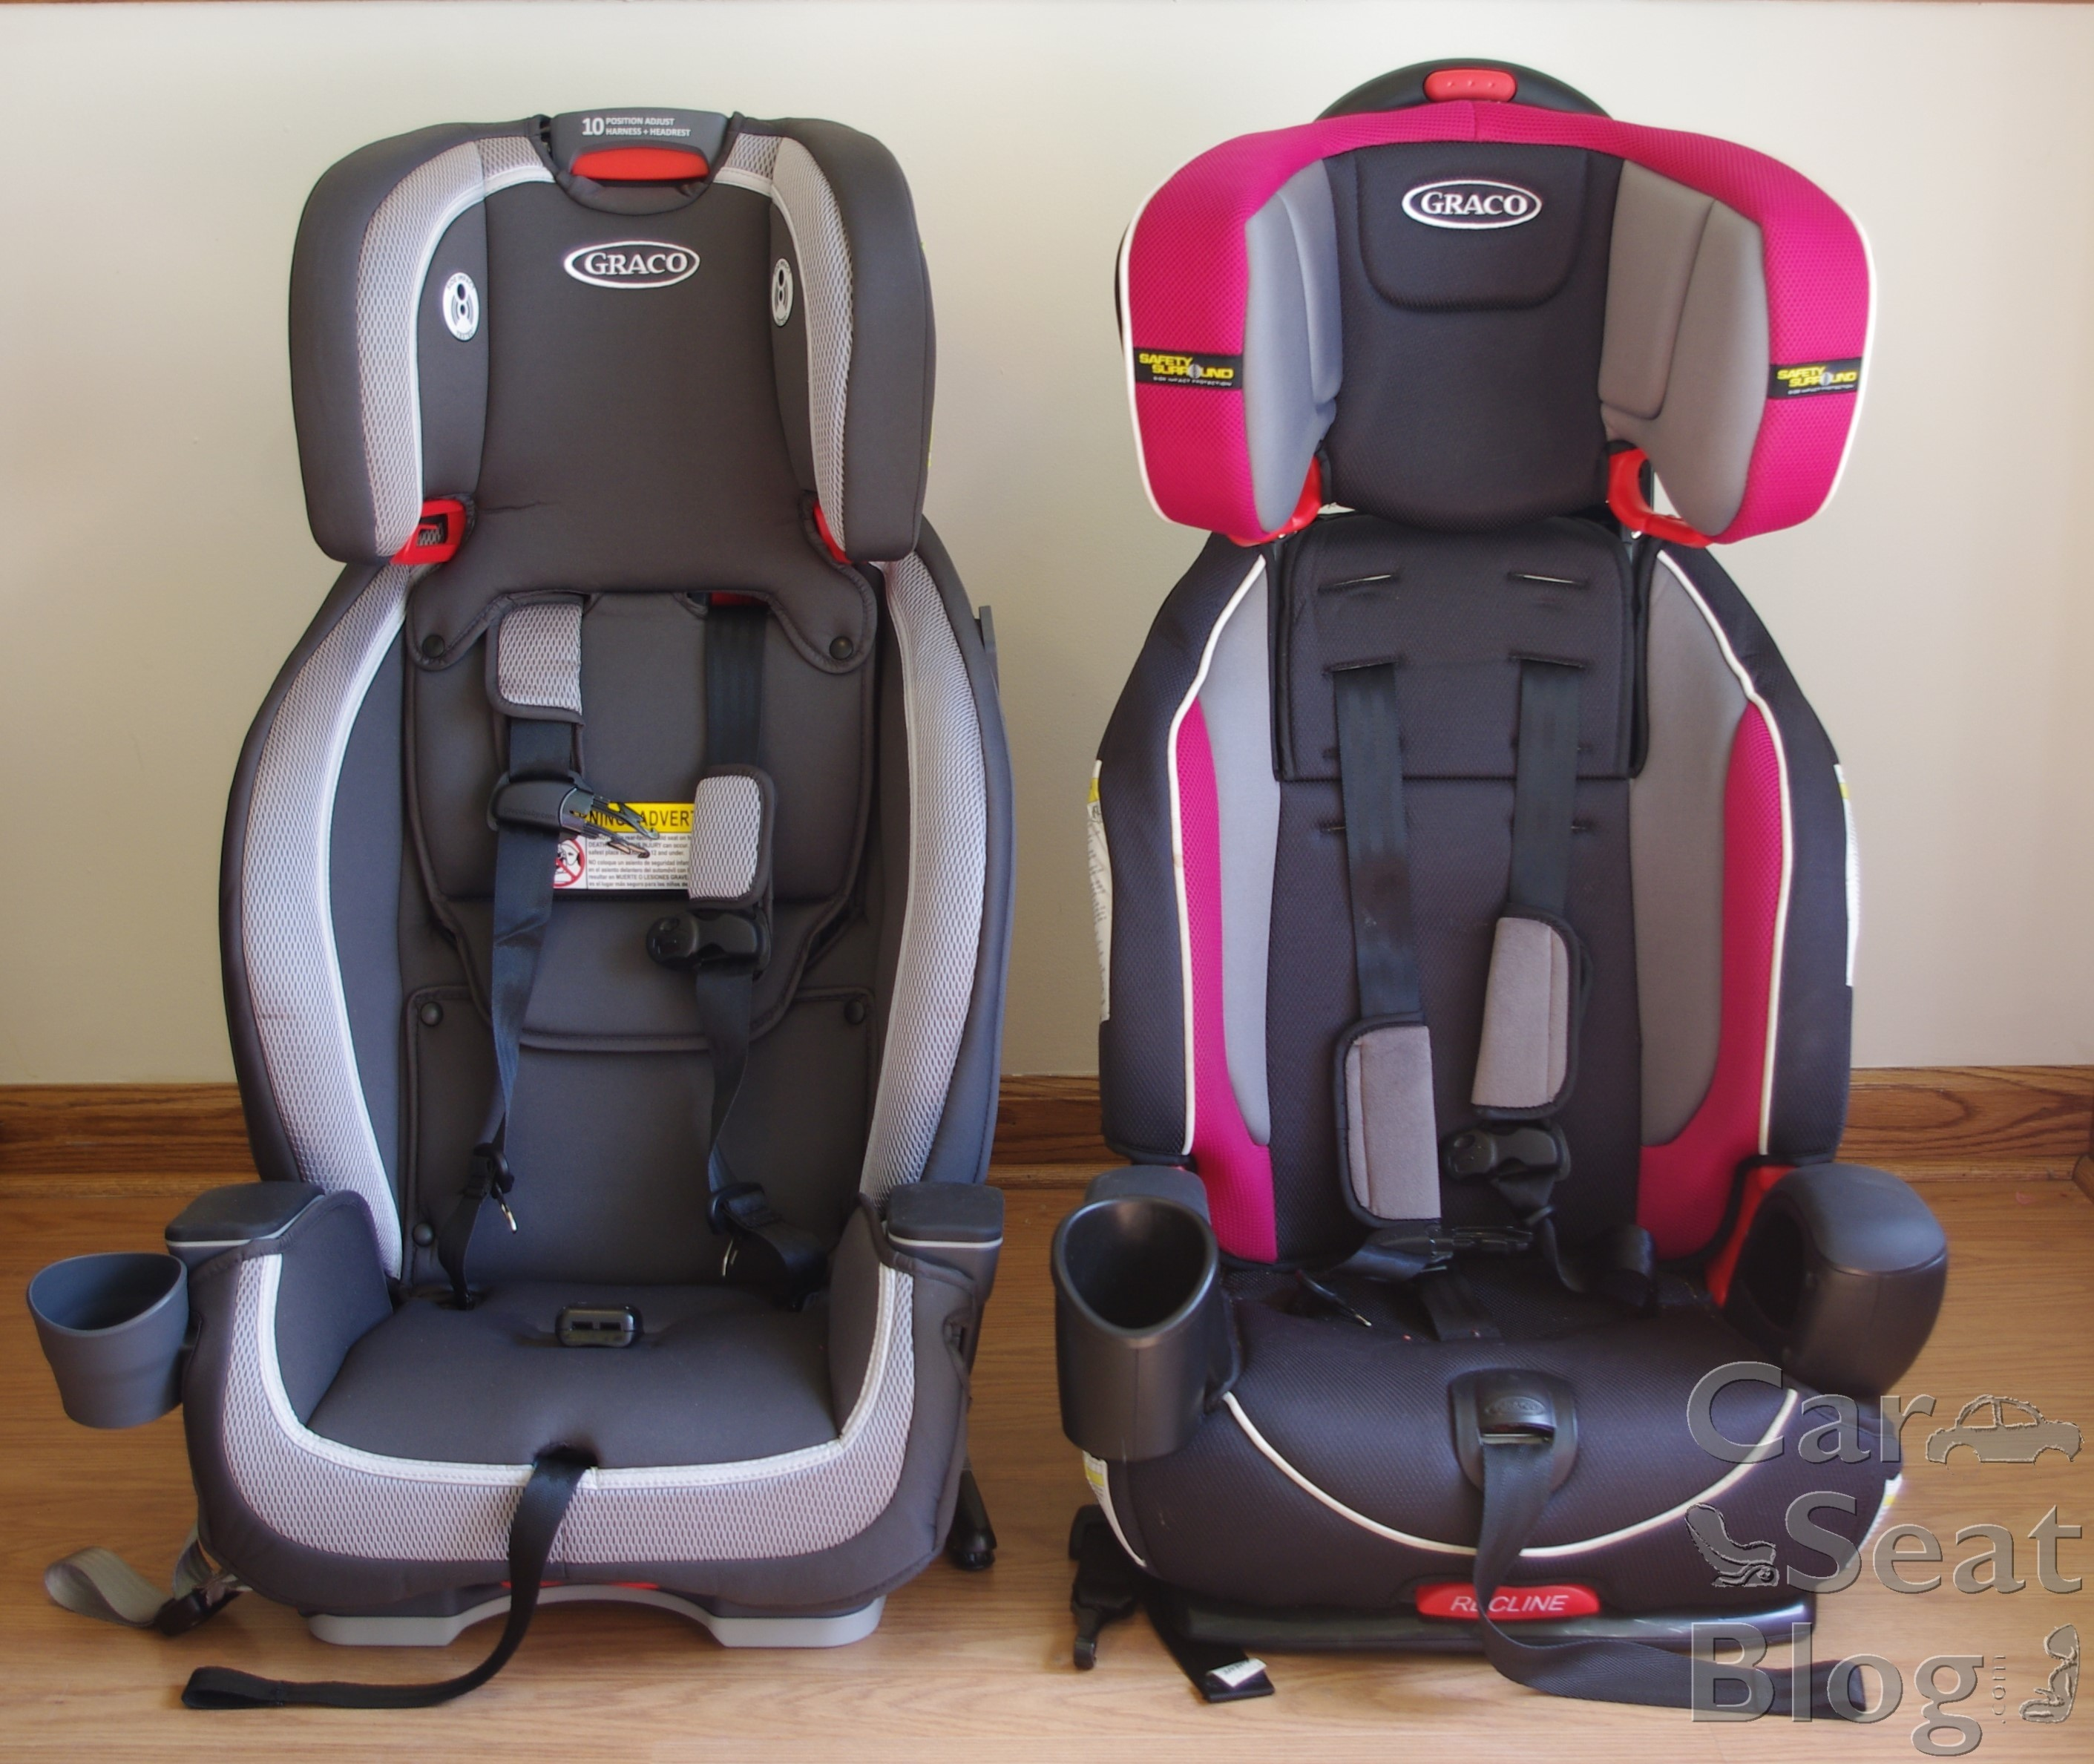 Cosco Car Seat Strap Diagram High Back Booster Car Seat with Harness Amazon Cosco Highback 2 Of Cosco Car Seat Strap Diagram